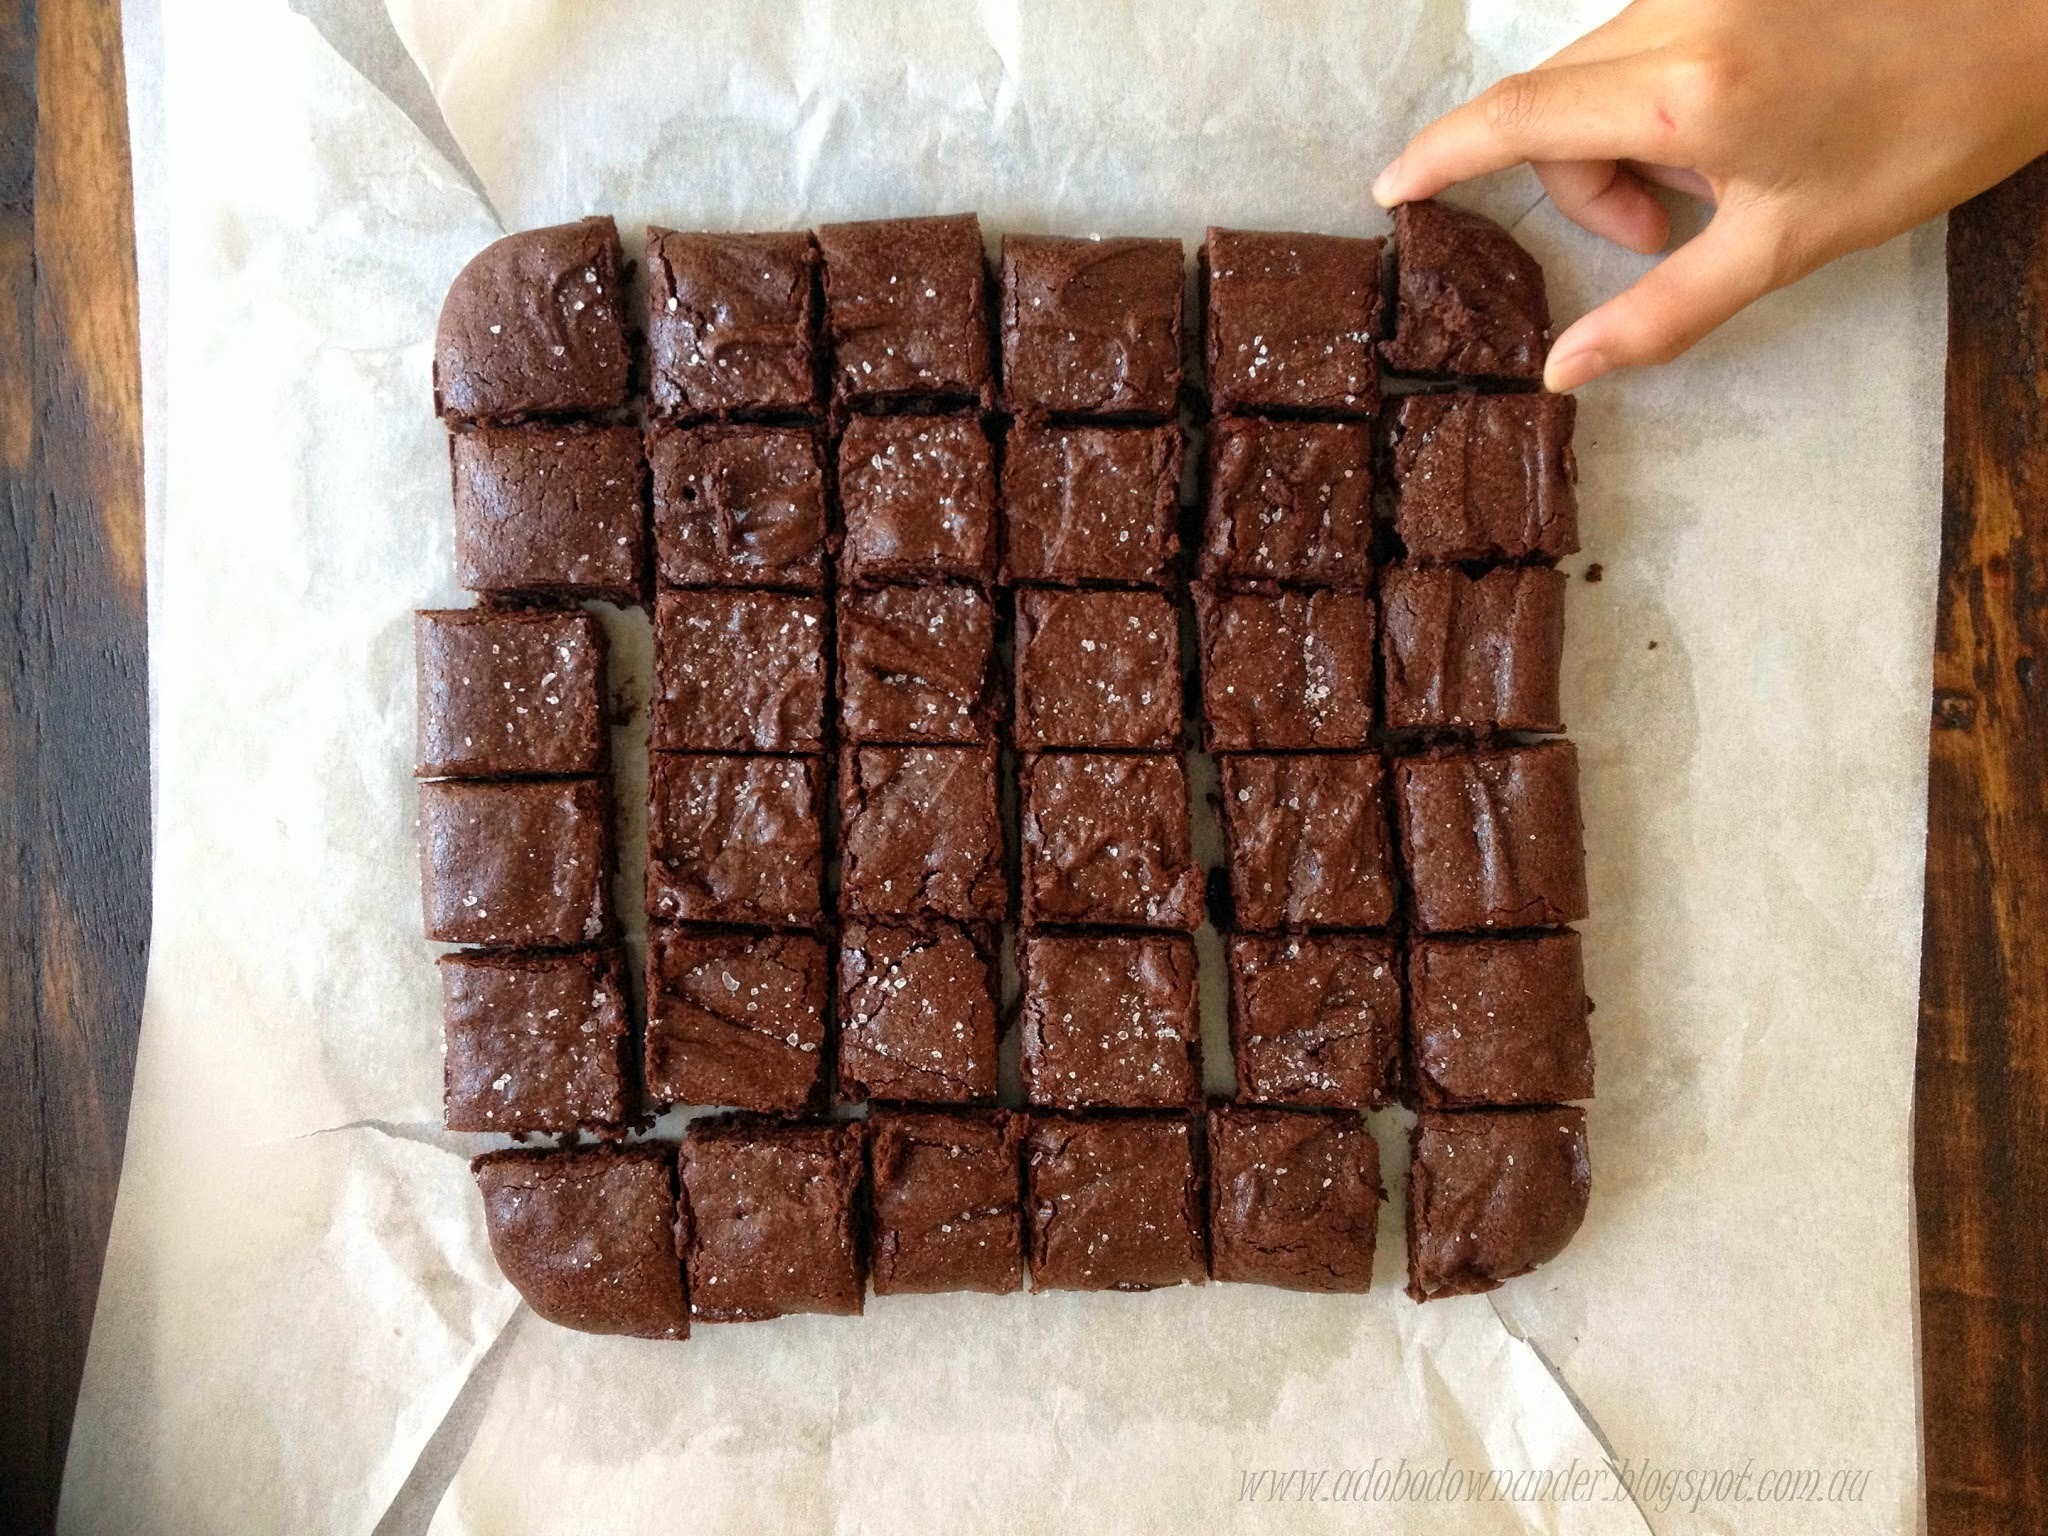 Cocoa brownies with sea salt flakes